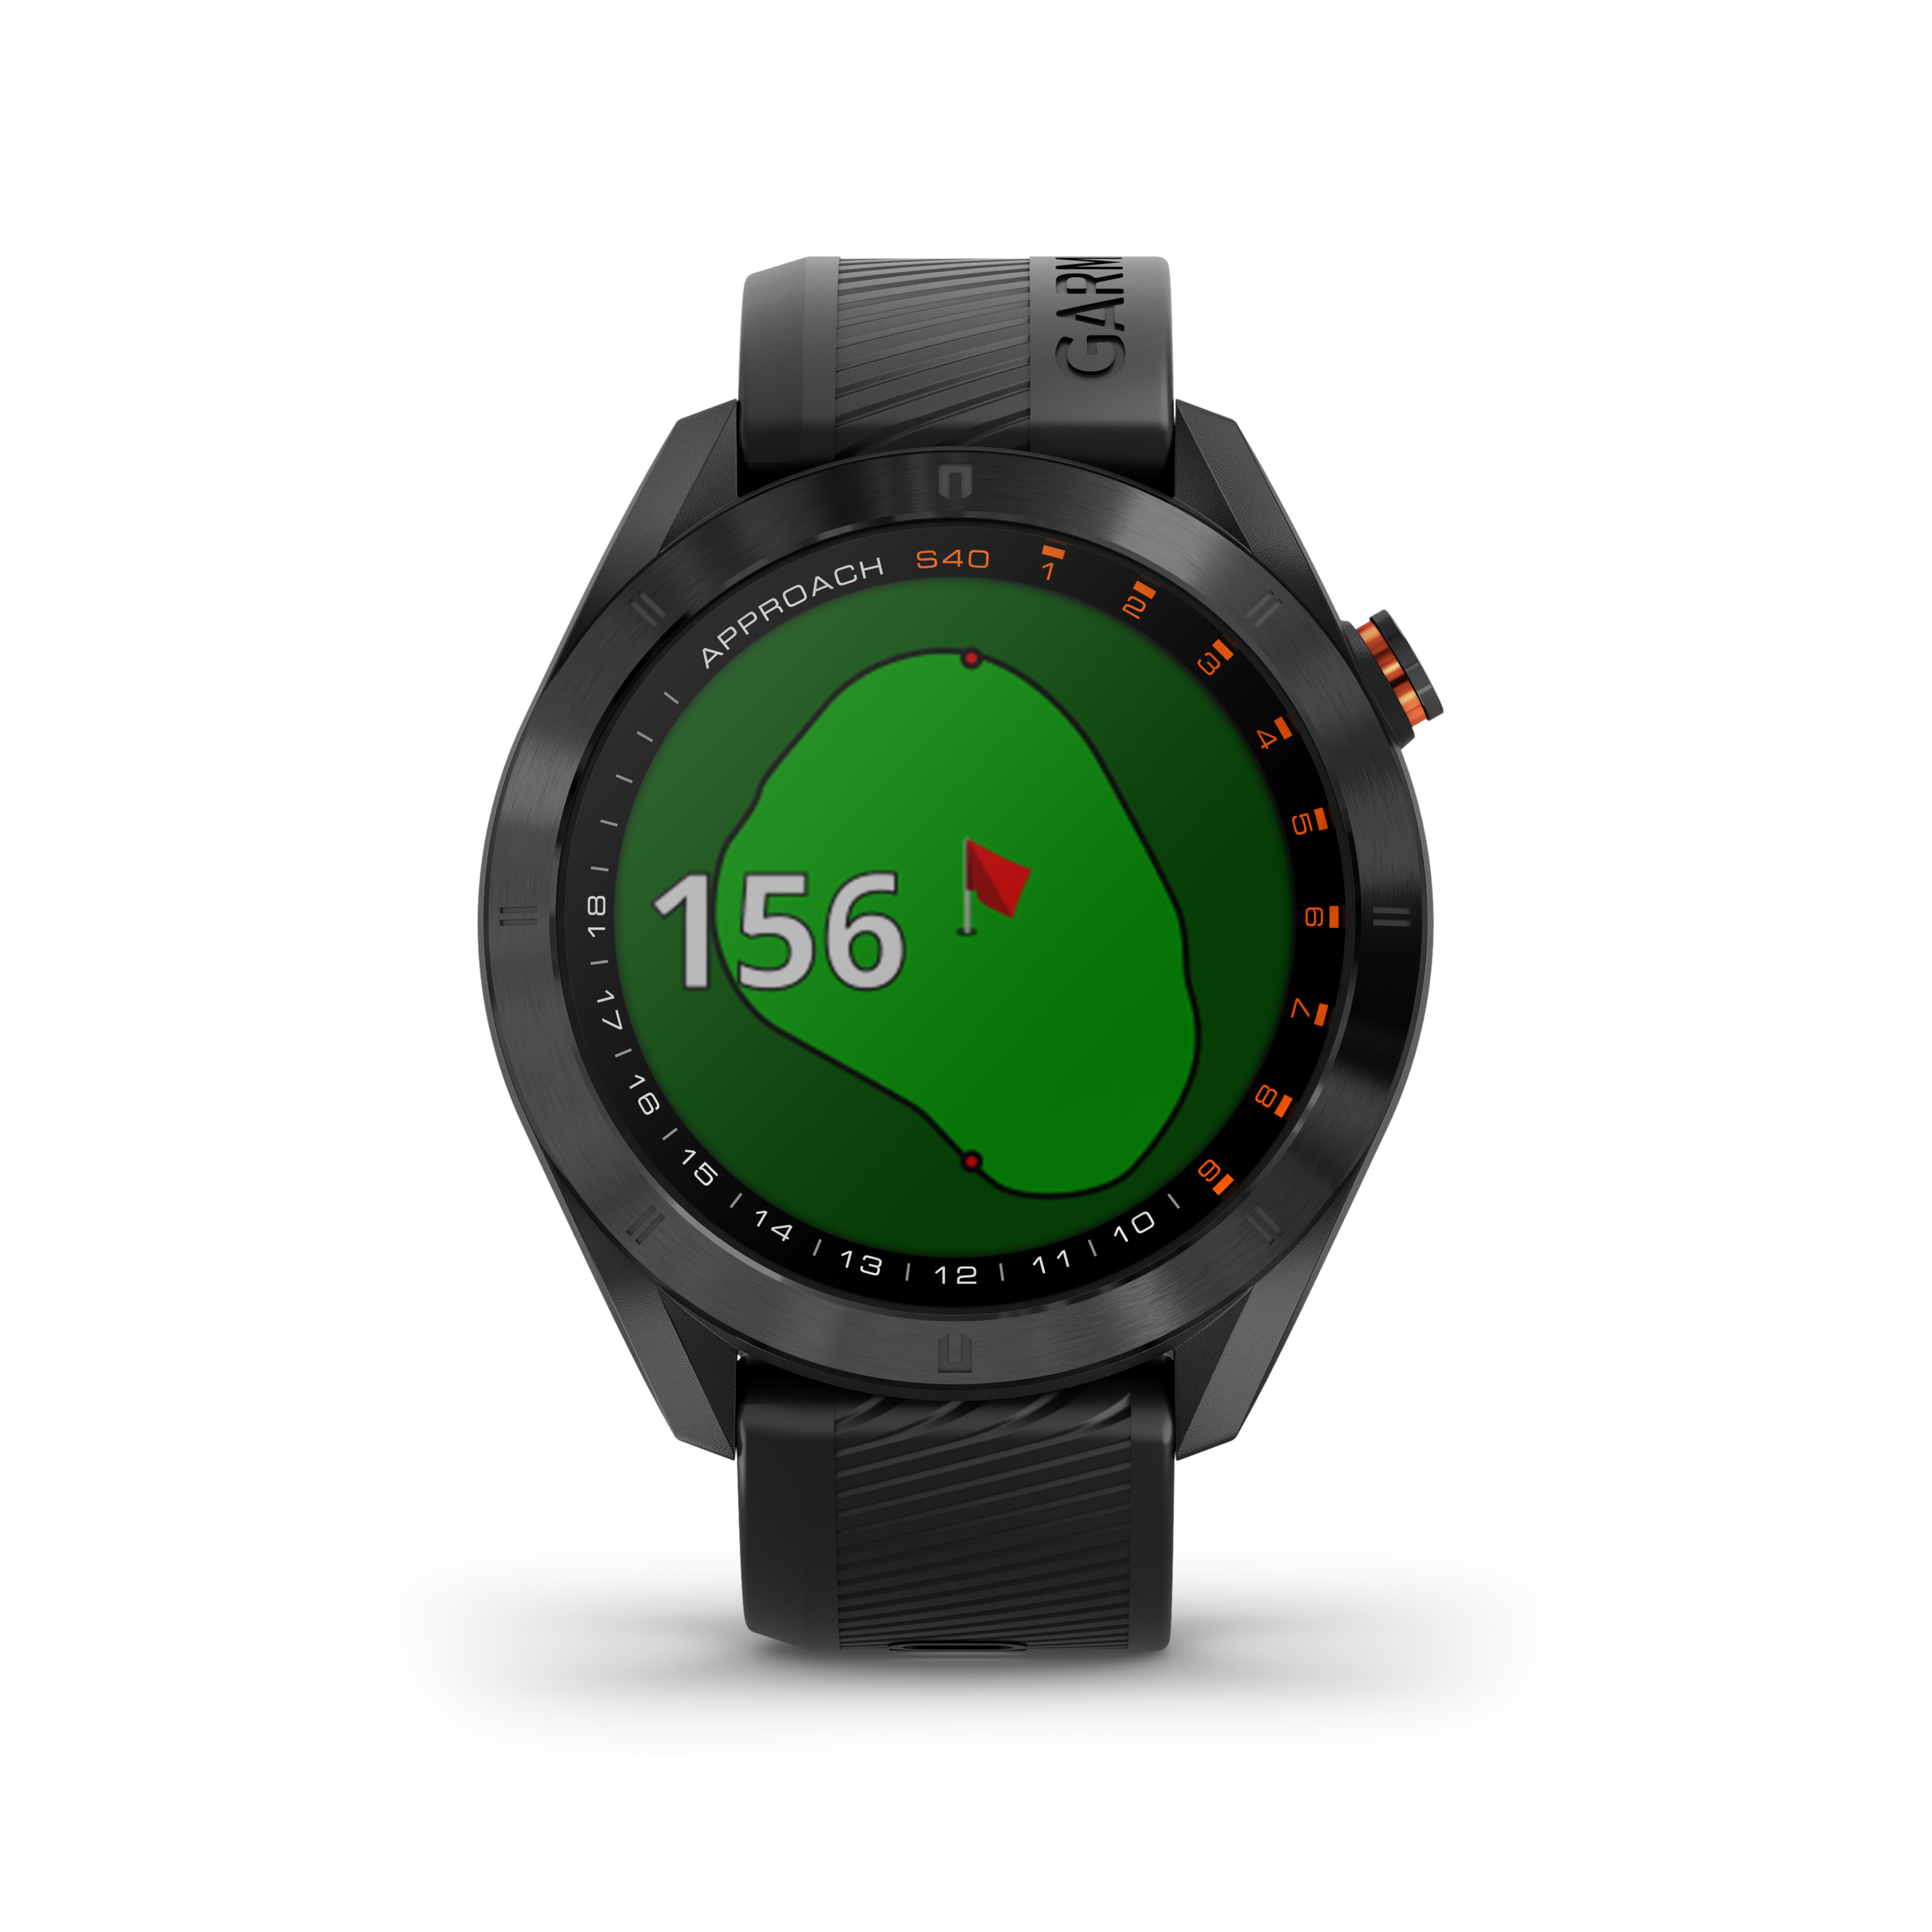 Garmin Approach® S40 golf